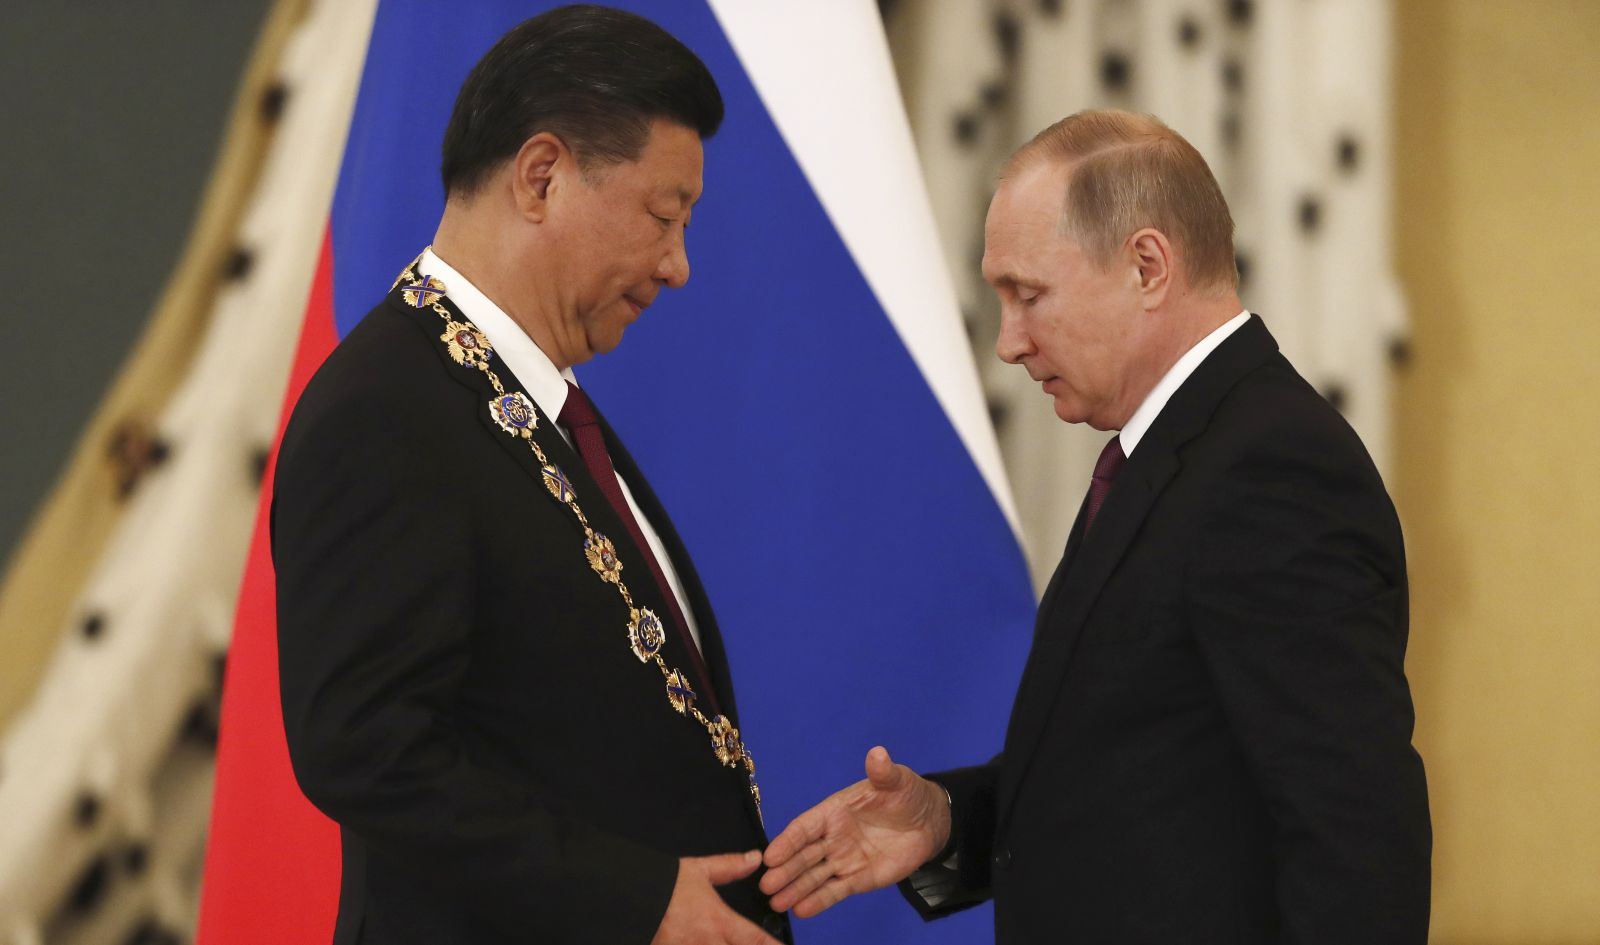 Russian President Vladimir Putin (R) shakes hands with his Chinese counterpart Xi Jinping after awarding him with the Order of St. Andrew the Apostle the First-Called during a meeting at the Kremlin in Moscow, Russia July 4, 2017. REUTERS/Sergei Ilnitsky/Pool.